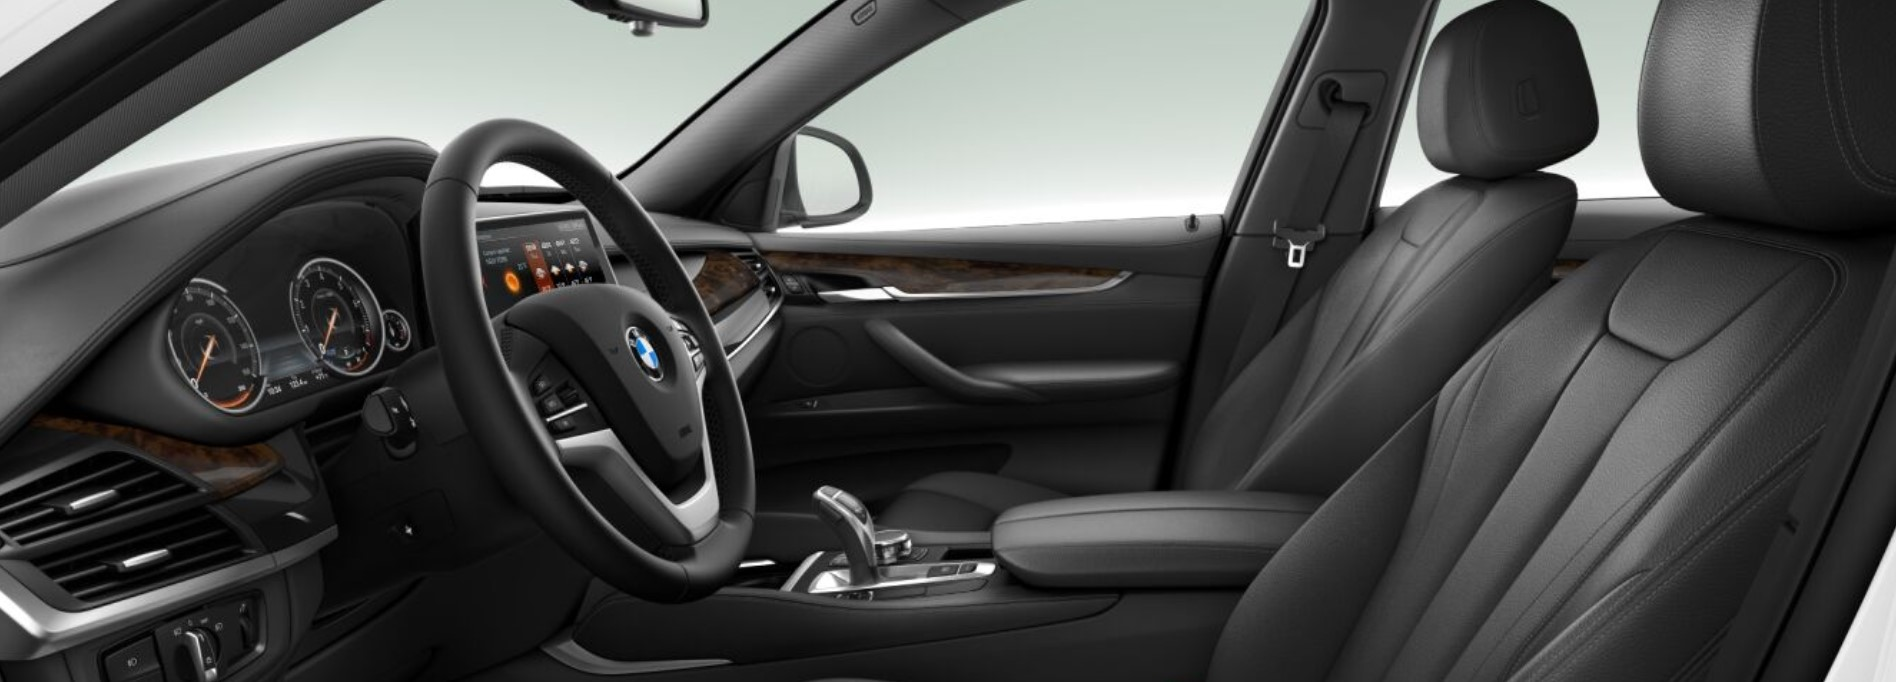 2018 BMW X6 xDrive35i Dark Leather Interior